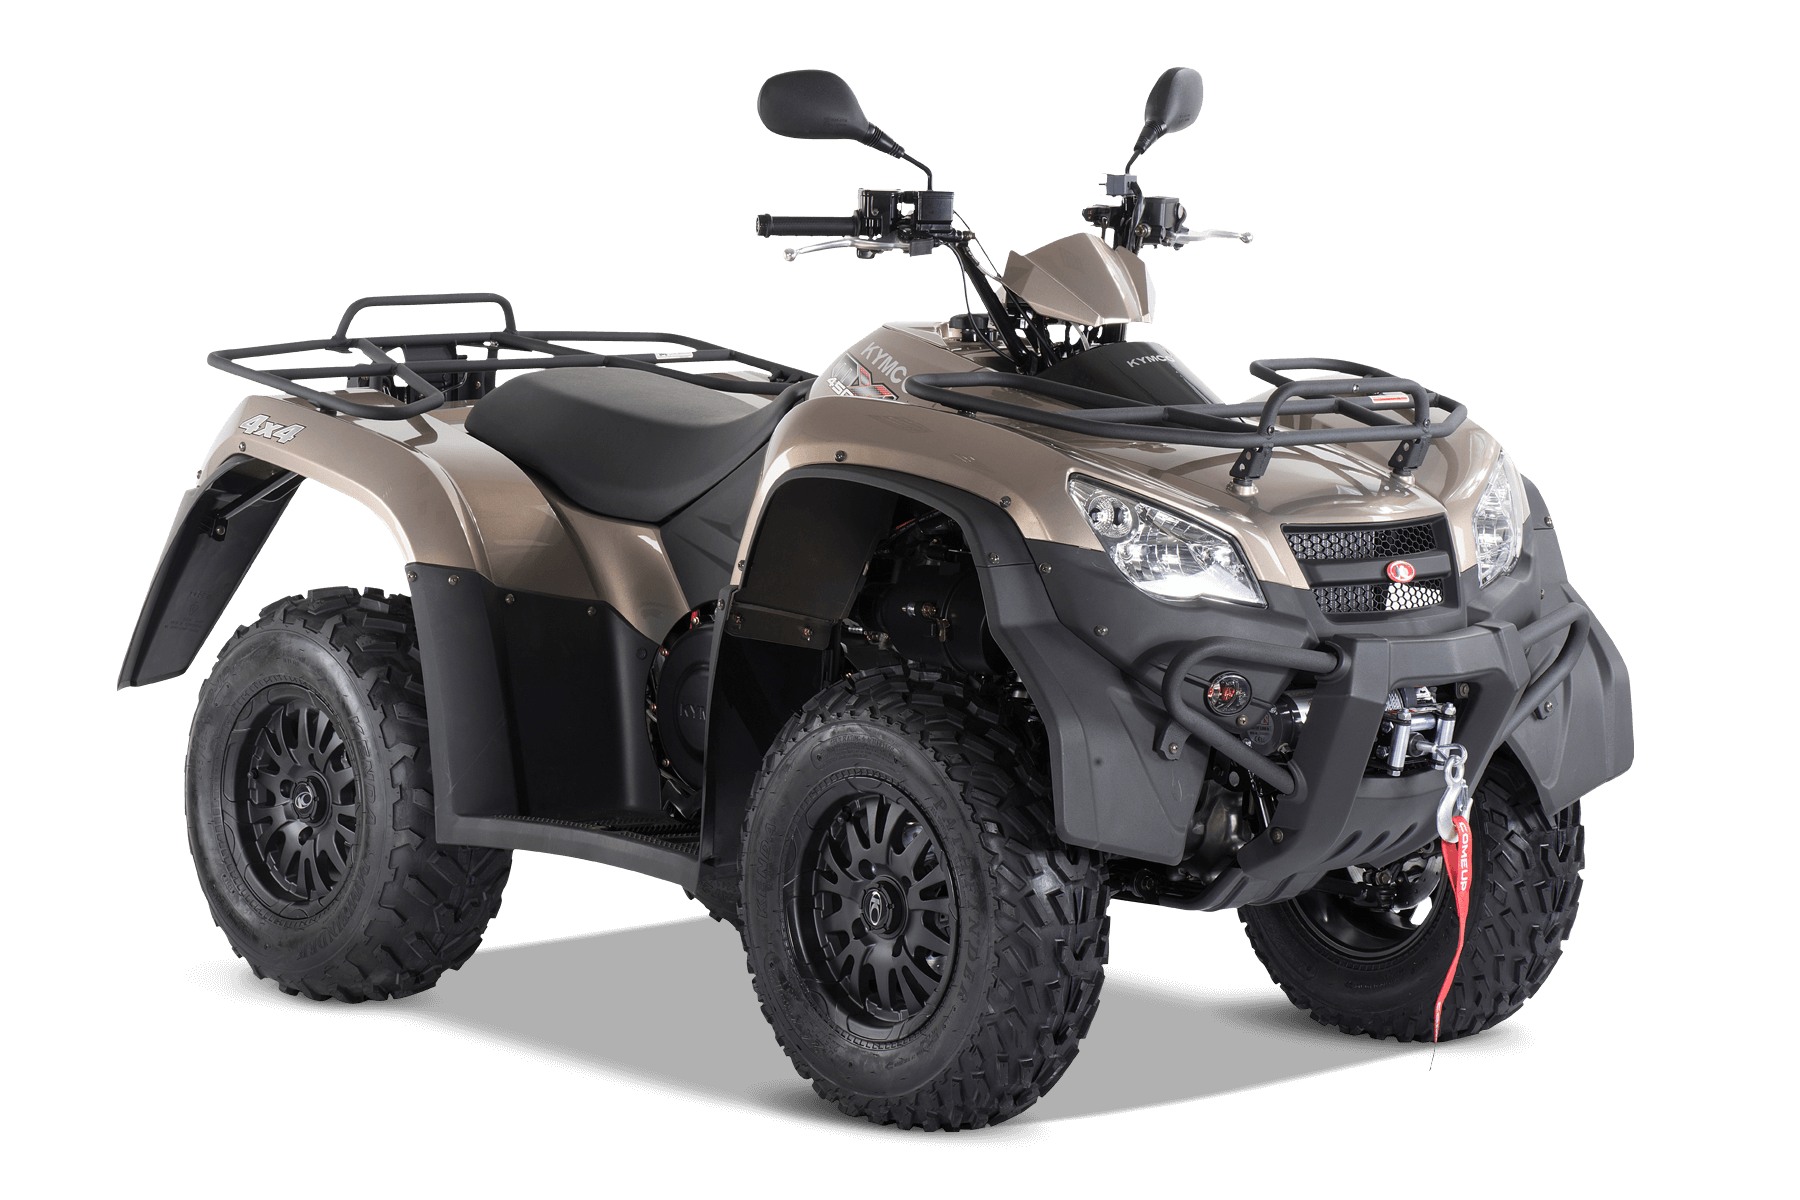 atv quad kymco mxu 450i 4x4 30 ps 443 ccm lof zulassung. Black Bedroom Furniture Sets. Home Design Ideas